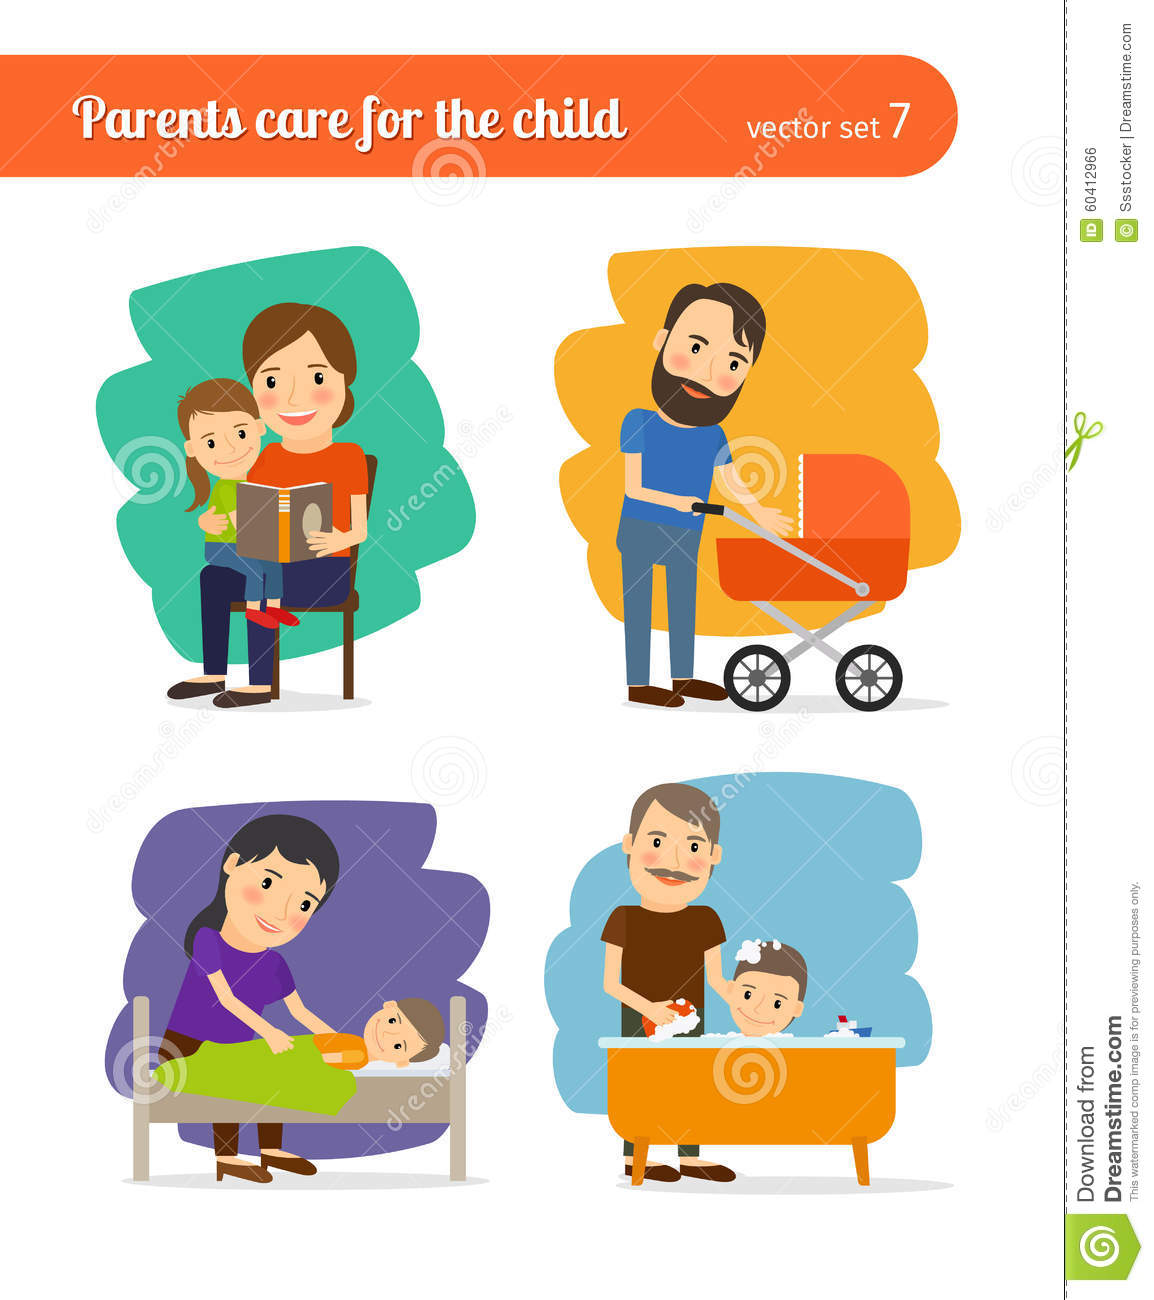 non parental care for children While children in shared care arrangements reported more inter-parental conflict than children in other arrangements, and lower contentment with their arrangements, neither a child's living arrangement at any single point in time, nor their pattern of care across time, independently predicted total mental health scores after four years.